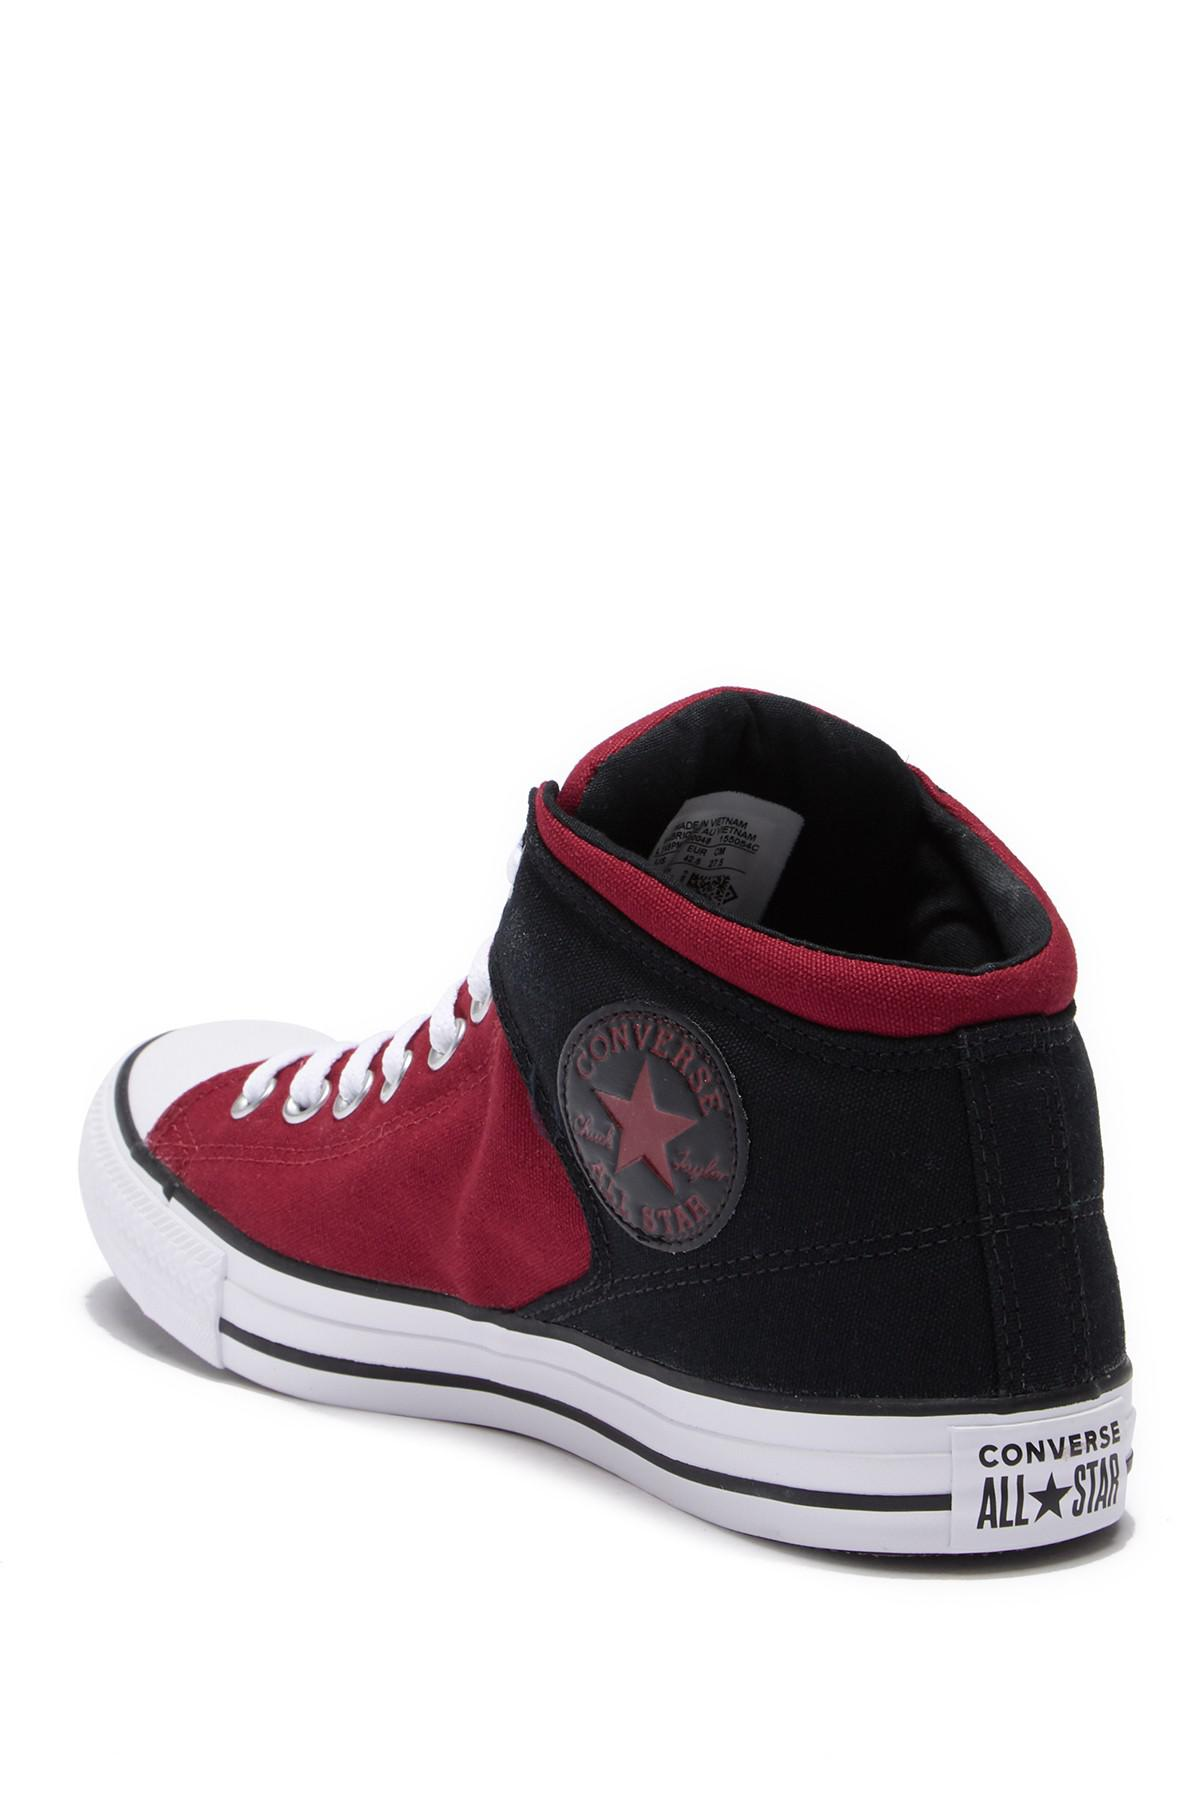 40c62026a879 Converse - Red Chuck Taylor All Star High Street Mid Sneaker (unisex) for  Men. View fullscreen